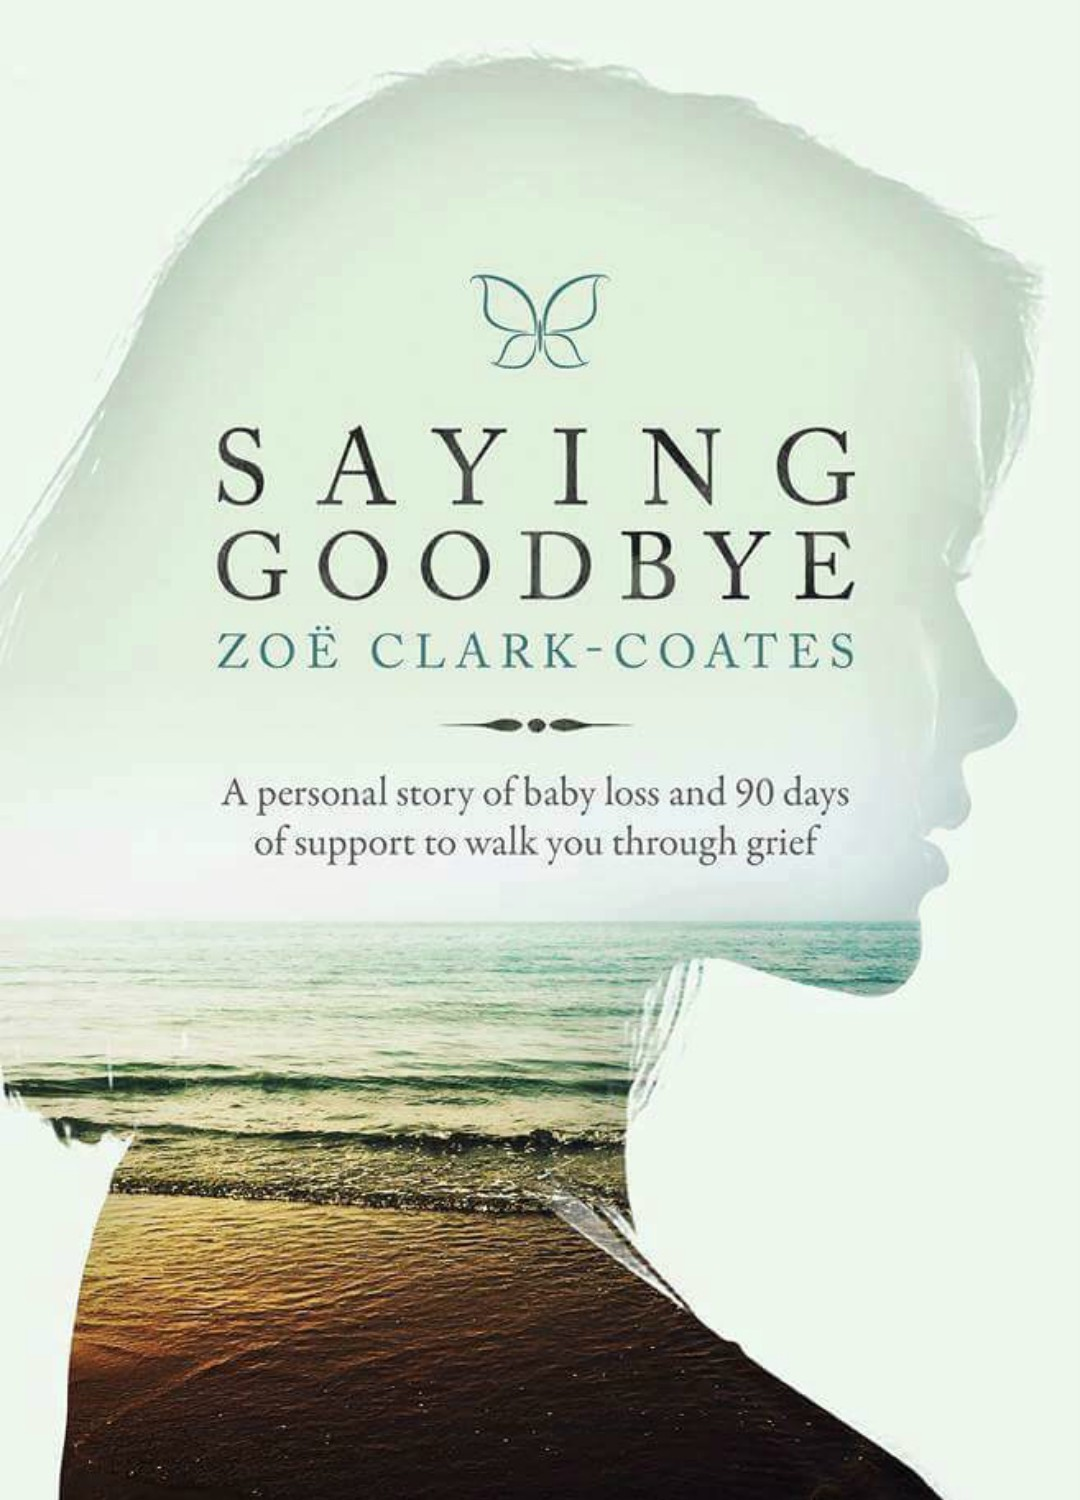 The cover image of Saying Goodbye by Zoë Clark-Coates - Saying Goodbye by Zoë Clark-Coates - A Review and an Interview with the Author - Mrs H's favourite things